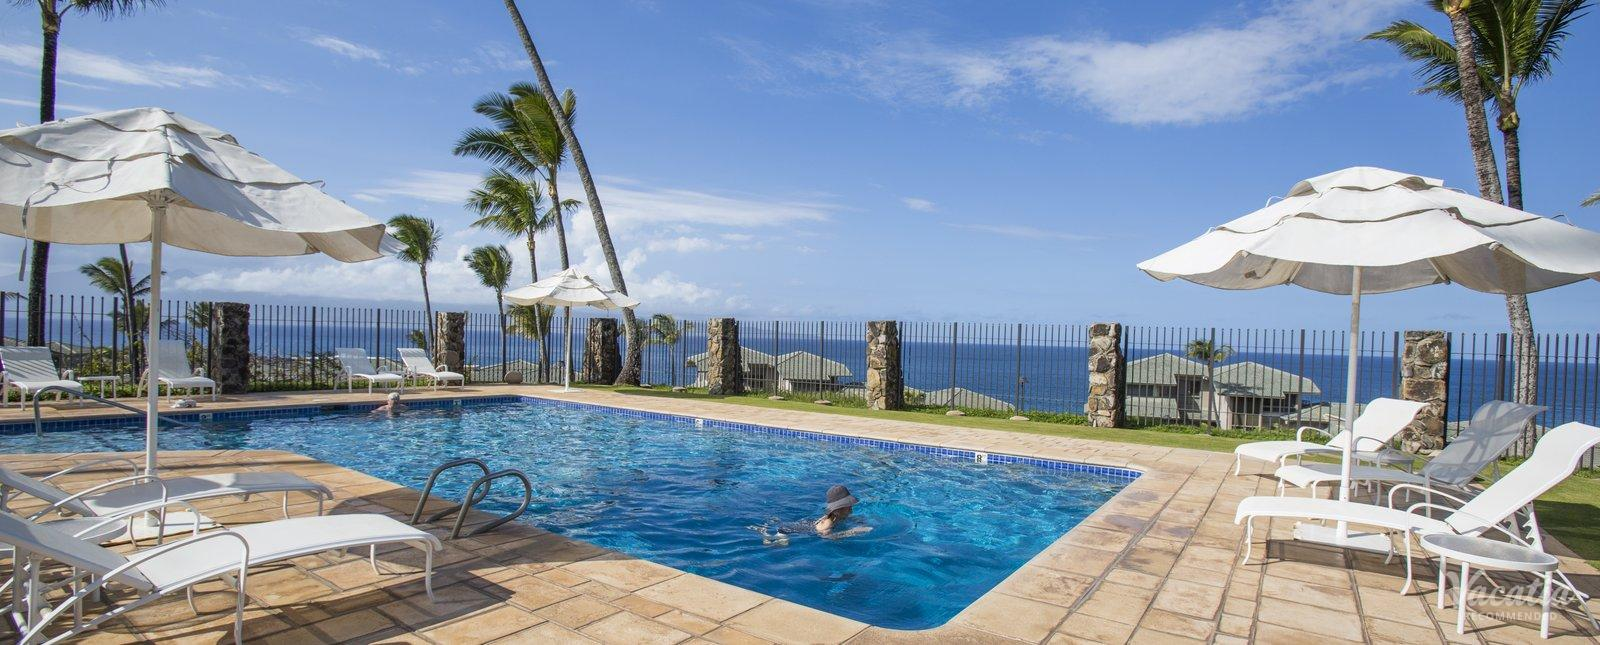 Kapalua Villas Pool